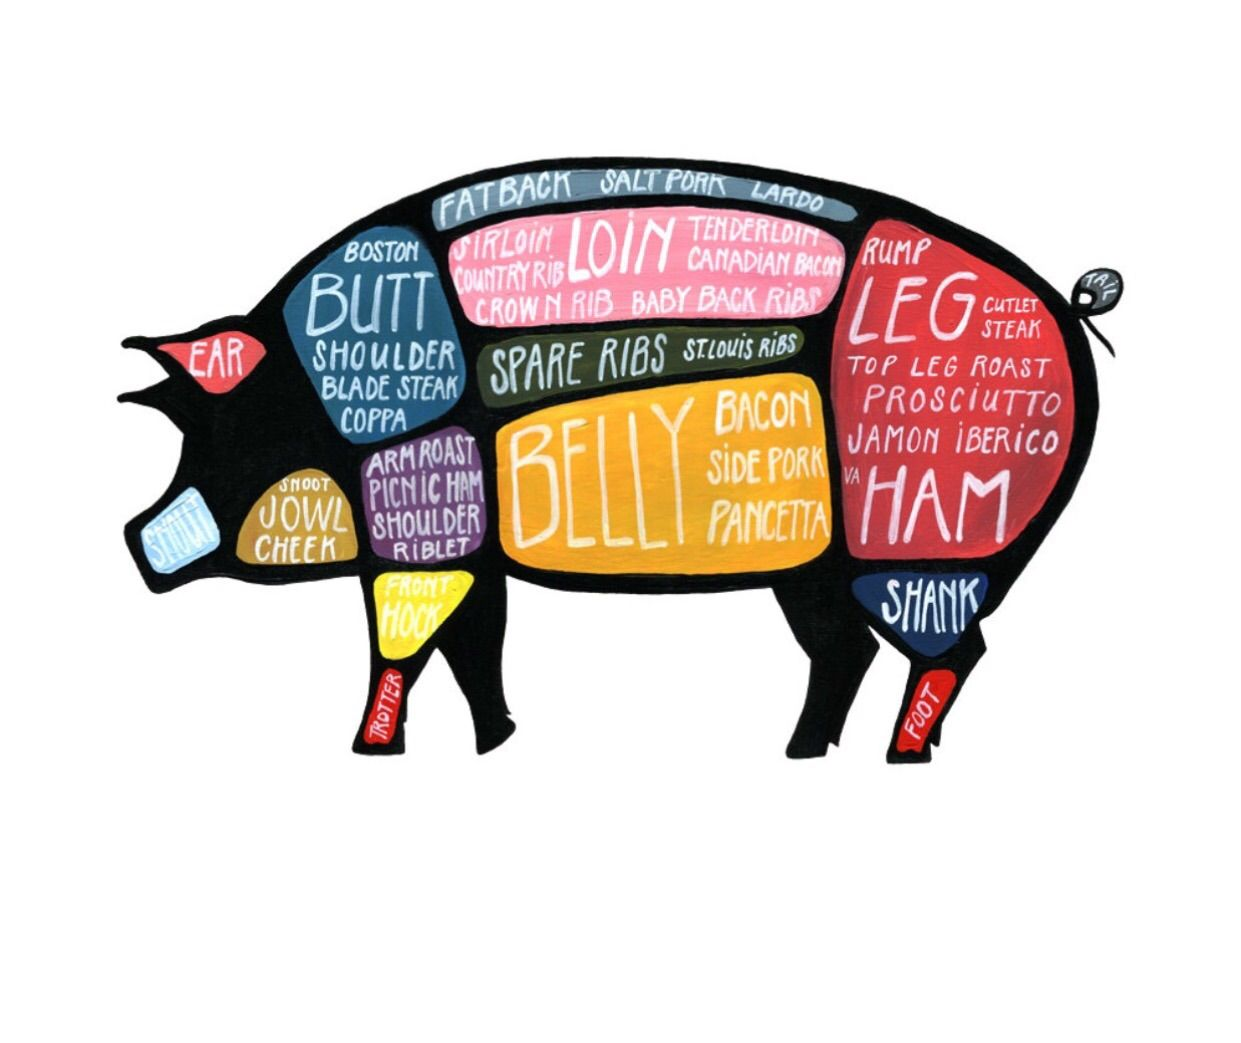 medium resolution of pig butcher diagram use every part of the pig detailed cuts of use every part pig diagram